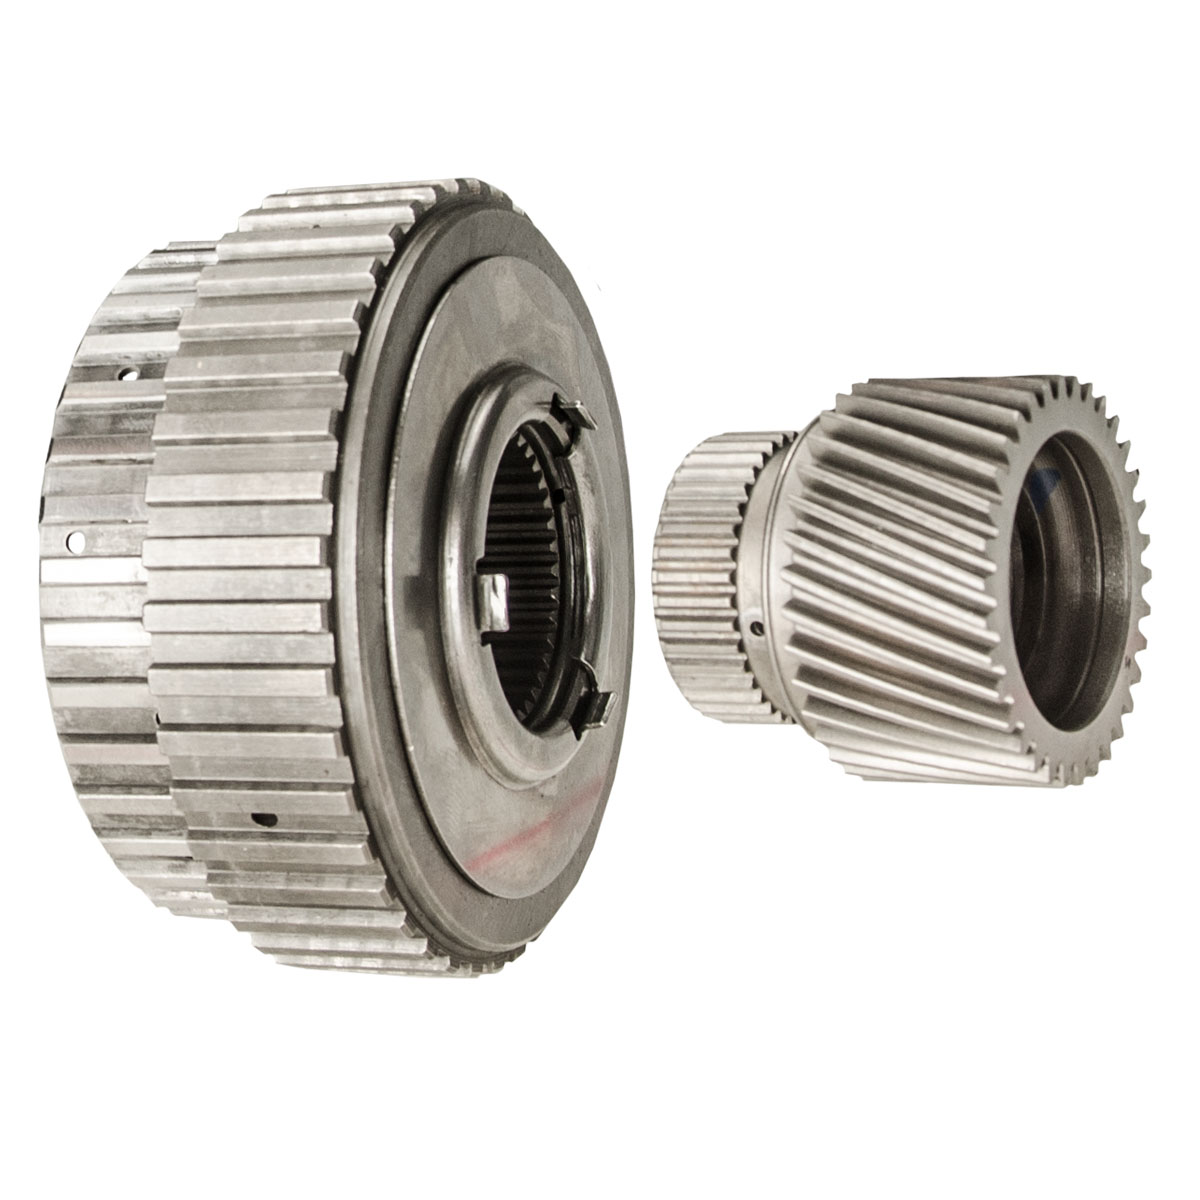 Automatic Transmission Sprag Assembly